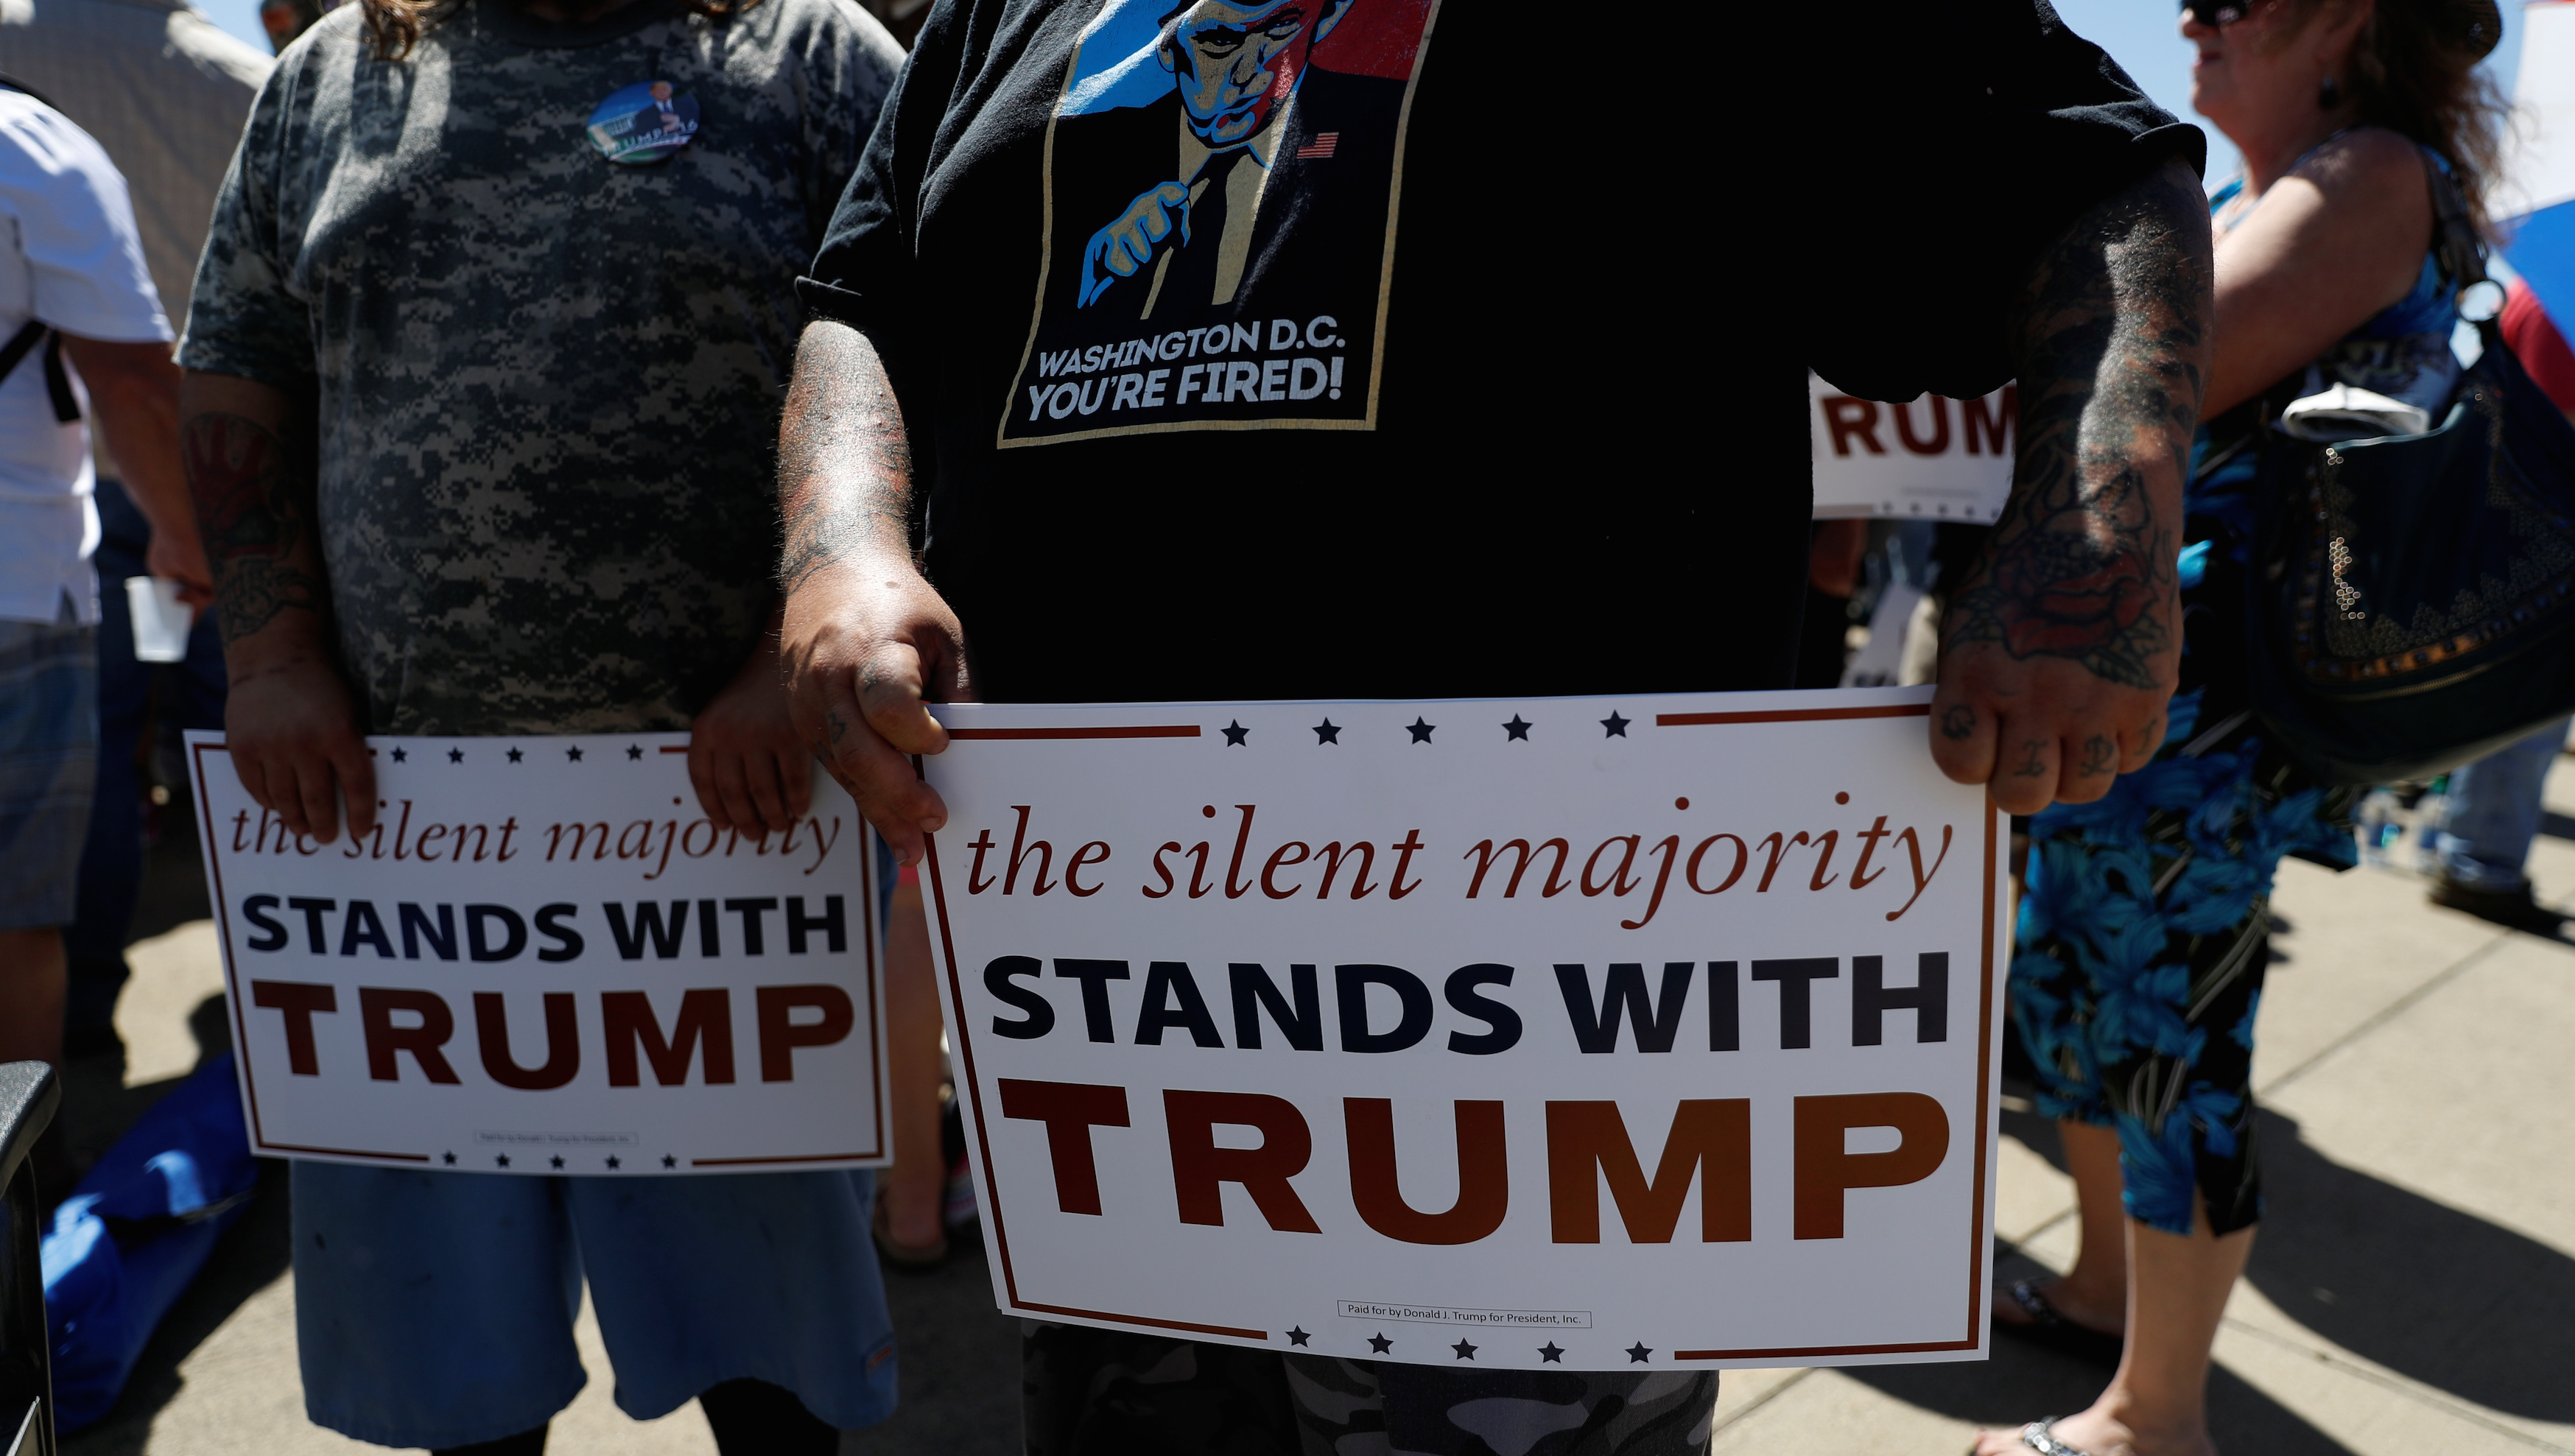 Supporters of Republican U.S. presidential candidate Trump hold signs while waiting for a campaign rally in Redding, California